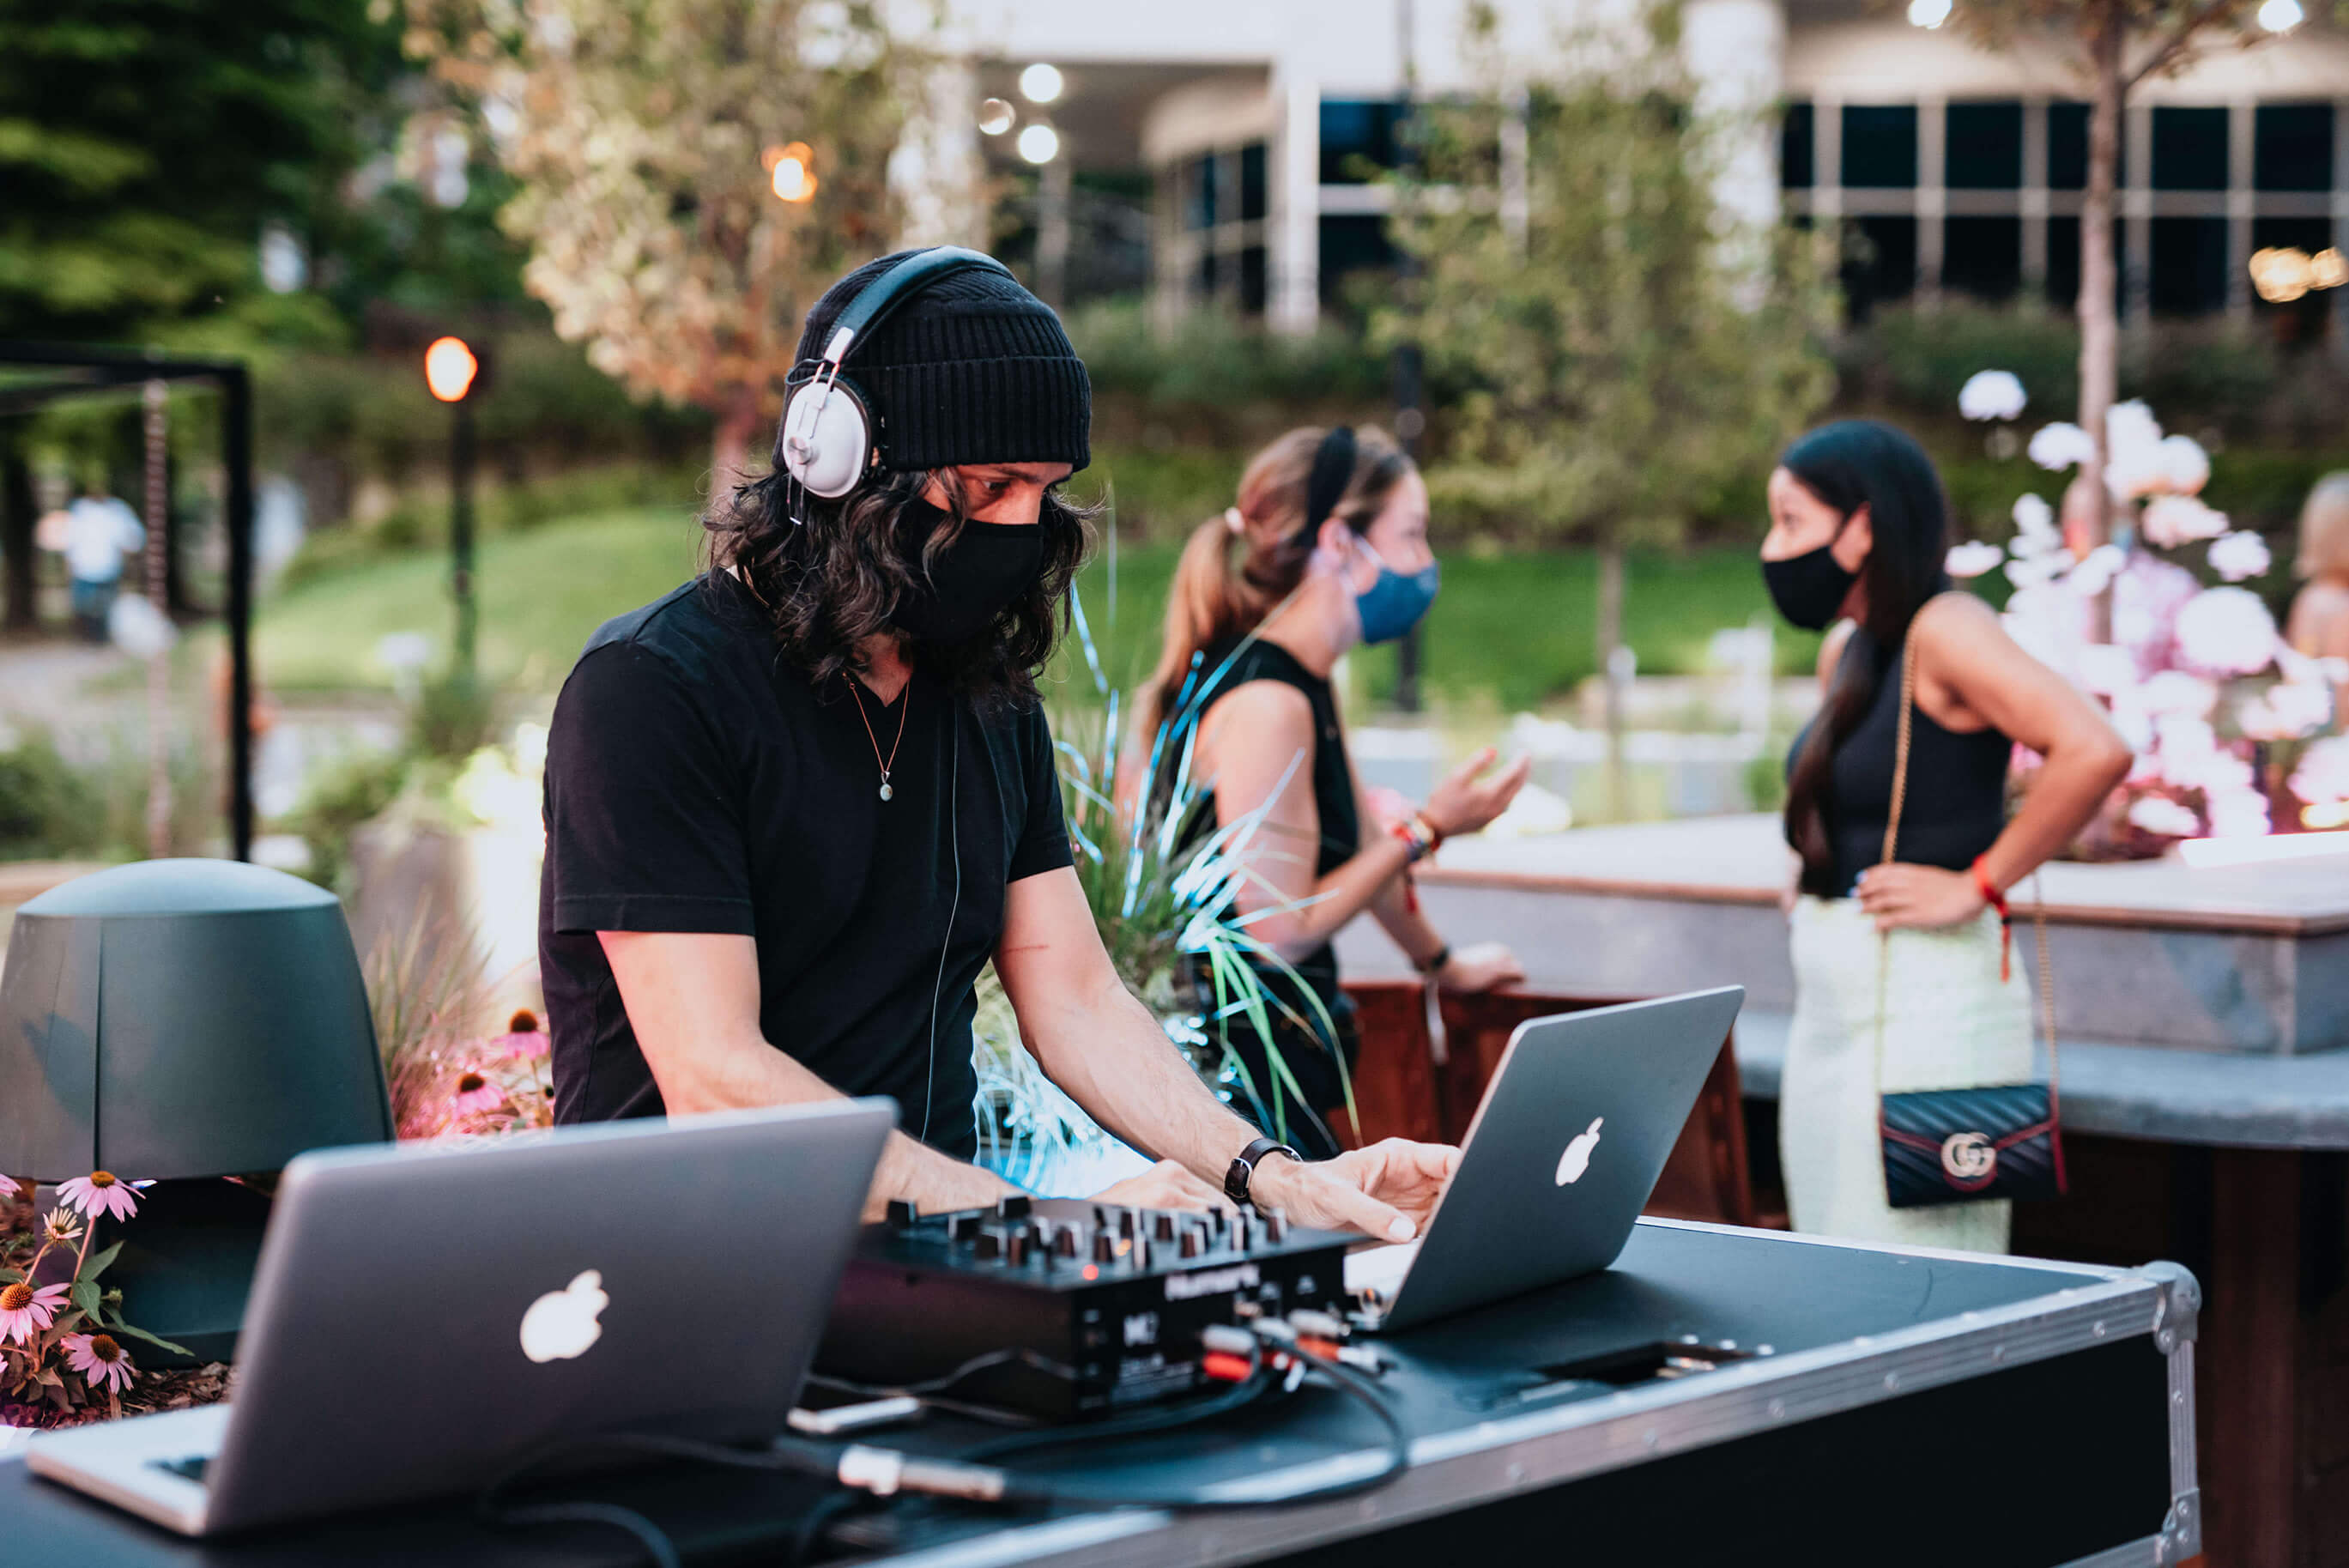 A man DJing with a facemask on with two women in the background chatting while wearing facemasks